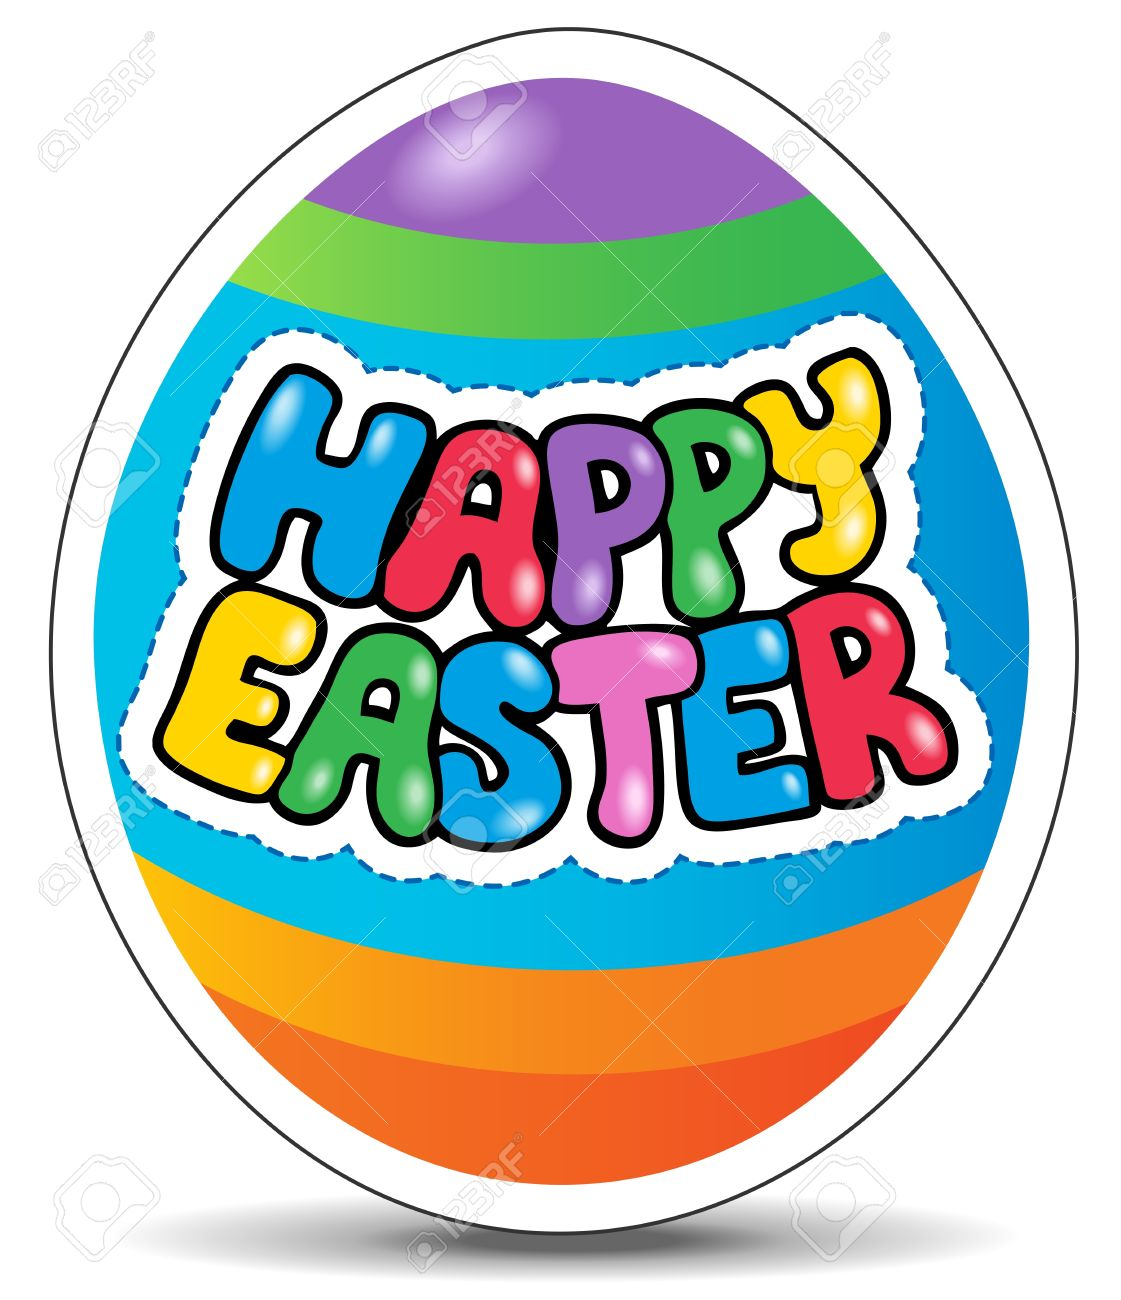 image regarding Happy Easter Sign Printable identified as Satisfied Easter signal topic impression 1 - vector instance.